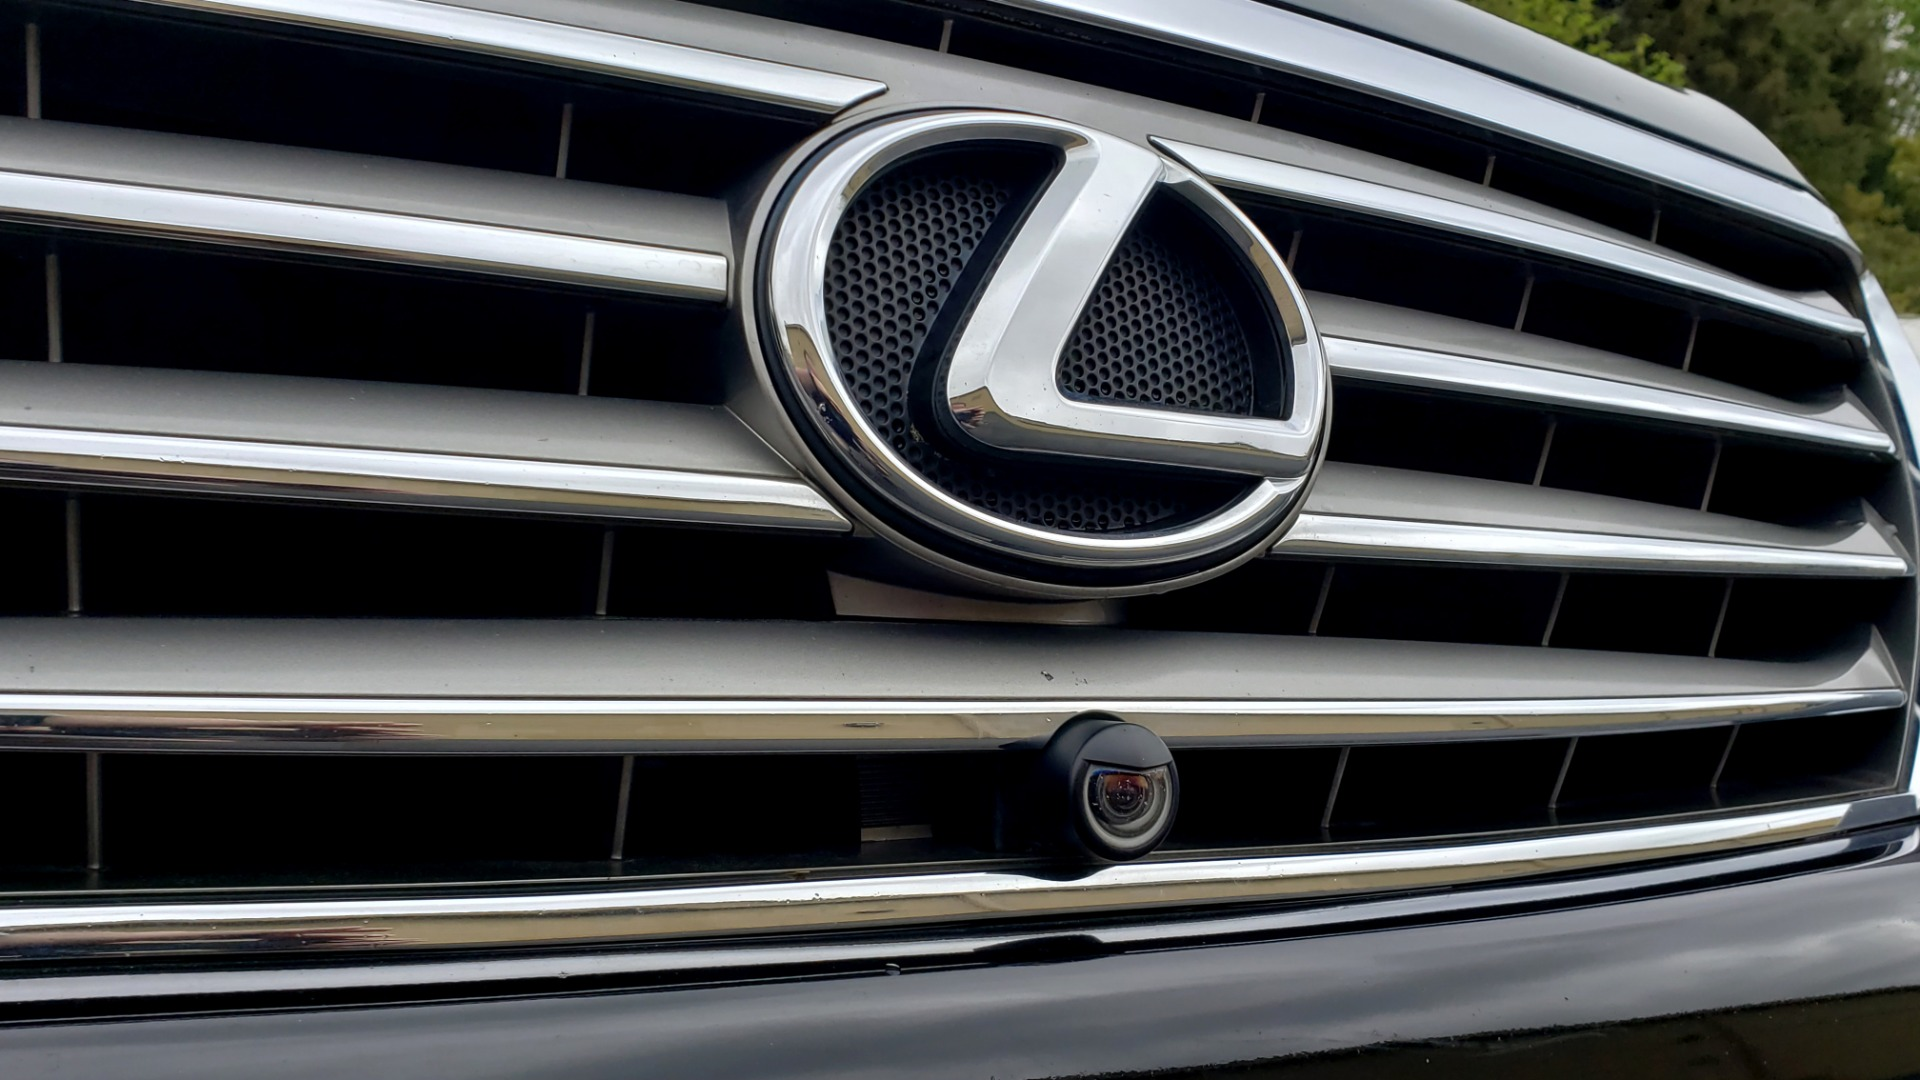 Used 2008 Lexus LX 570 4WD / TECH PKG / NAV / SUNROOF / MARK LEVINSON / PARK ASST for sale $22,995 at Formula Imports in Charlotte NC 28227 24